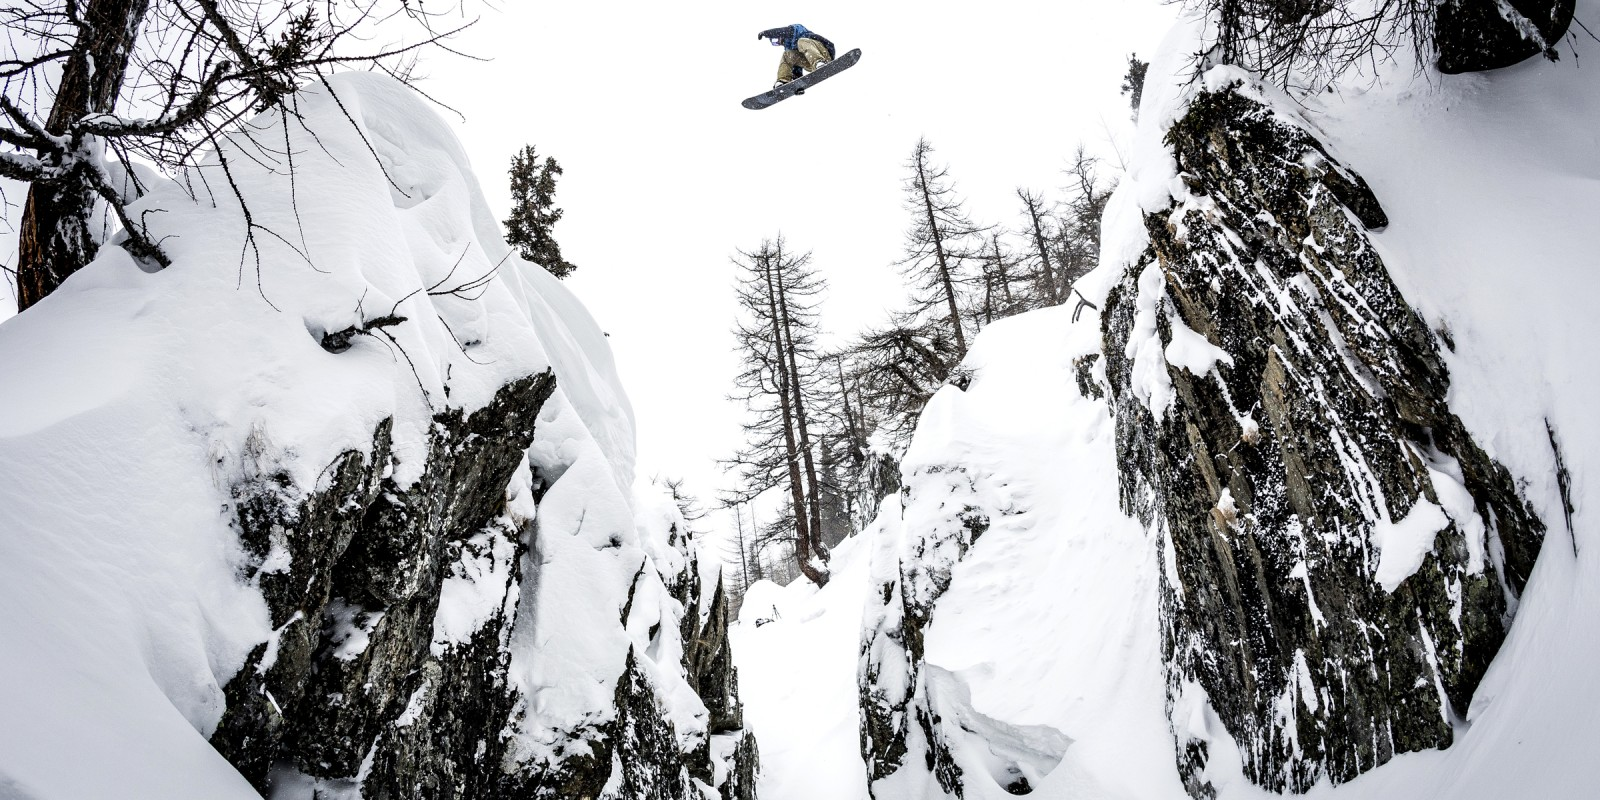 Gruber in Searching For snowboard movie